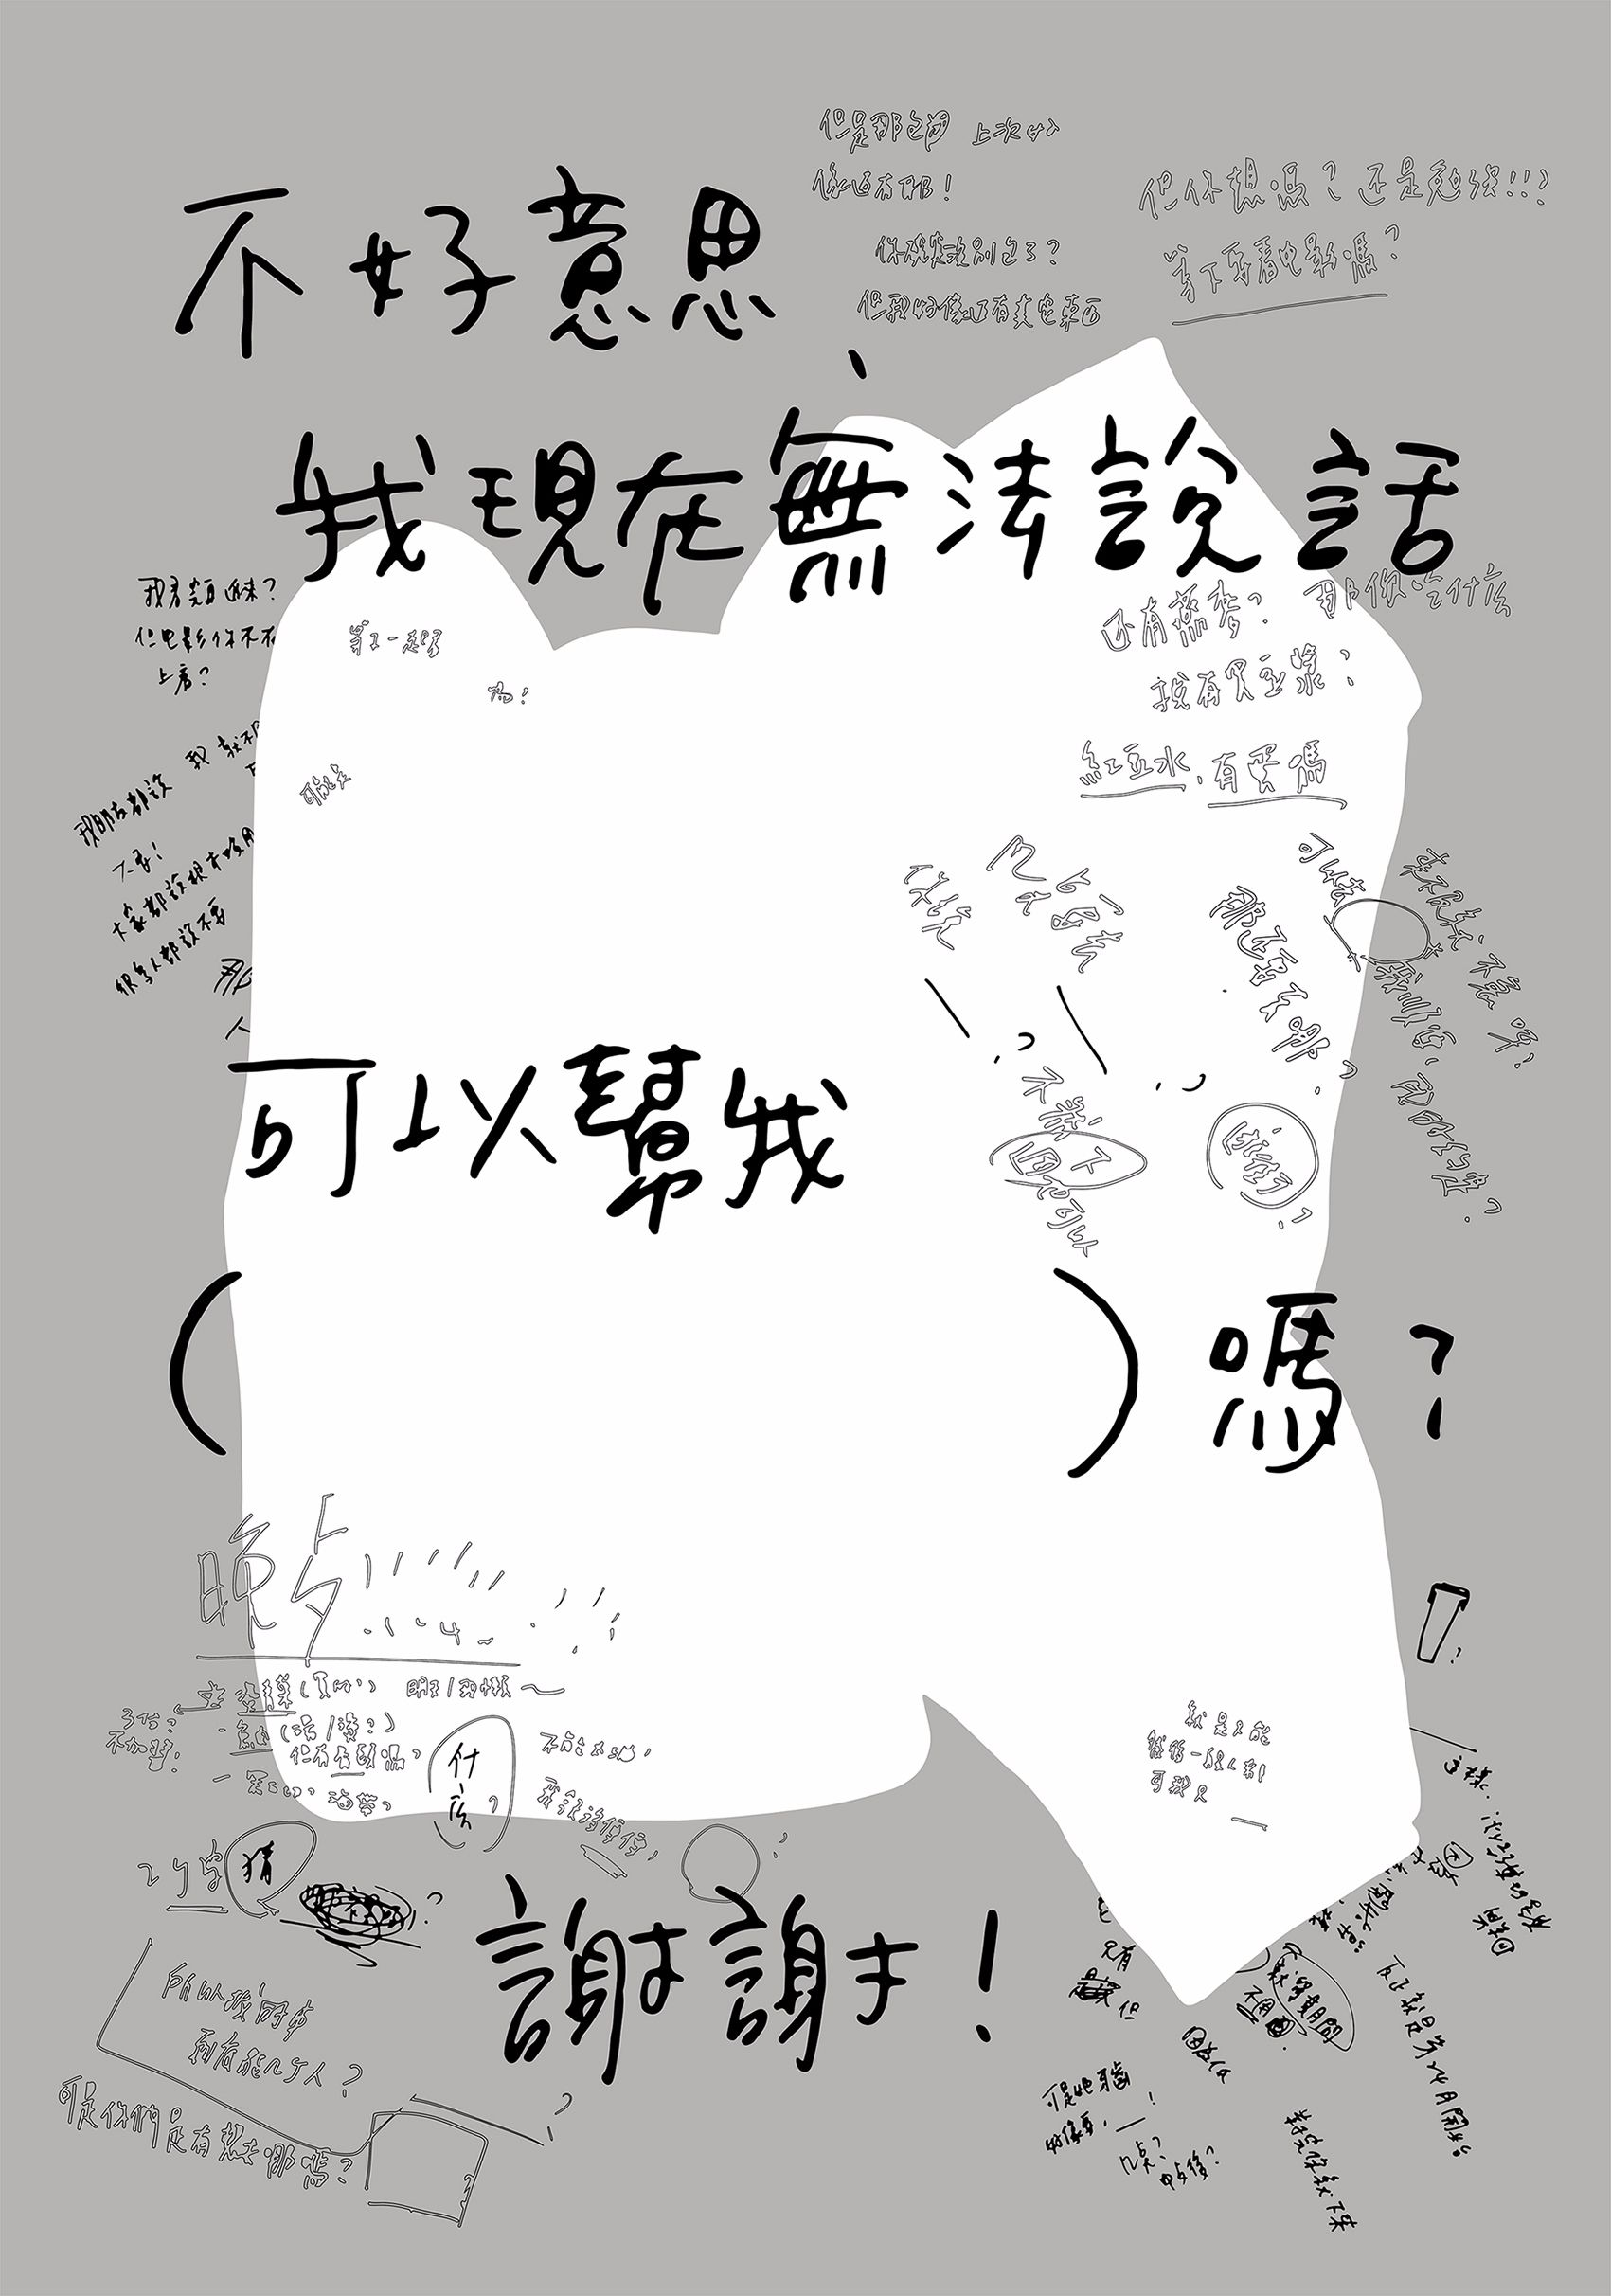 Pin by Dan Choi on Posters in 2020 Typography, Poster